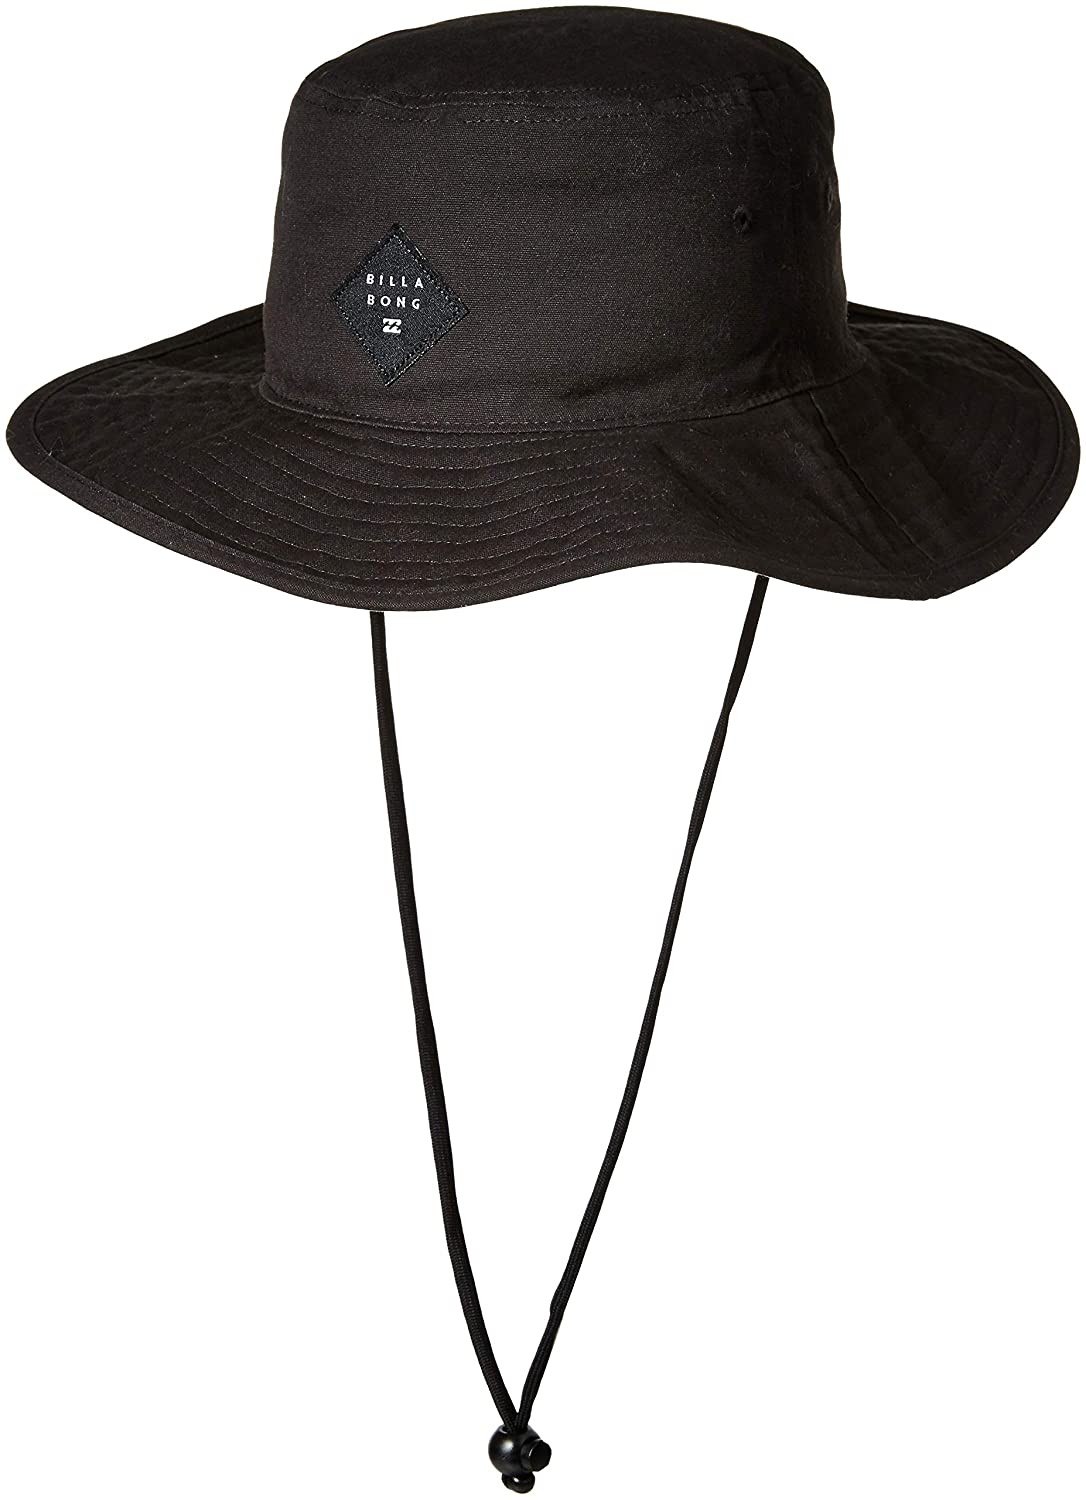 BILLABONG Men's Big John Sun Hat